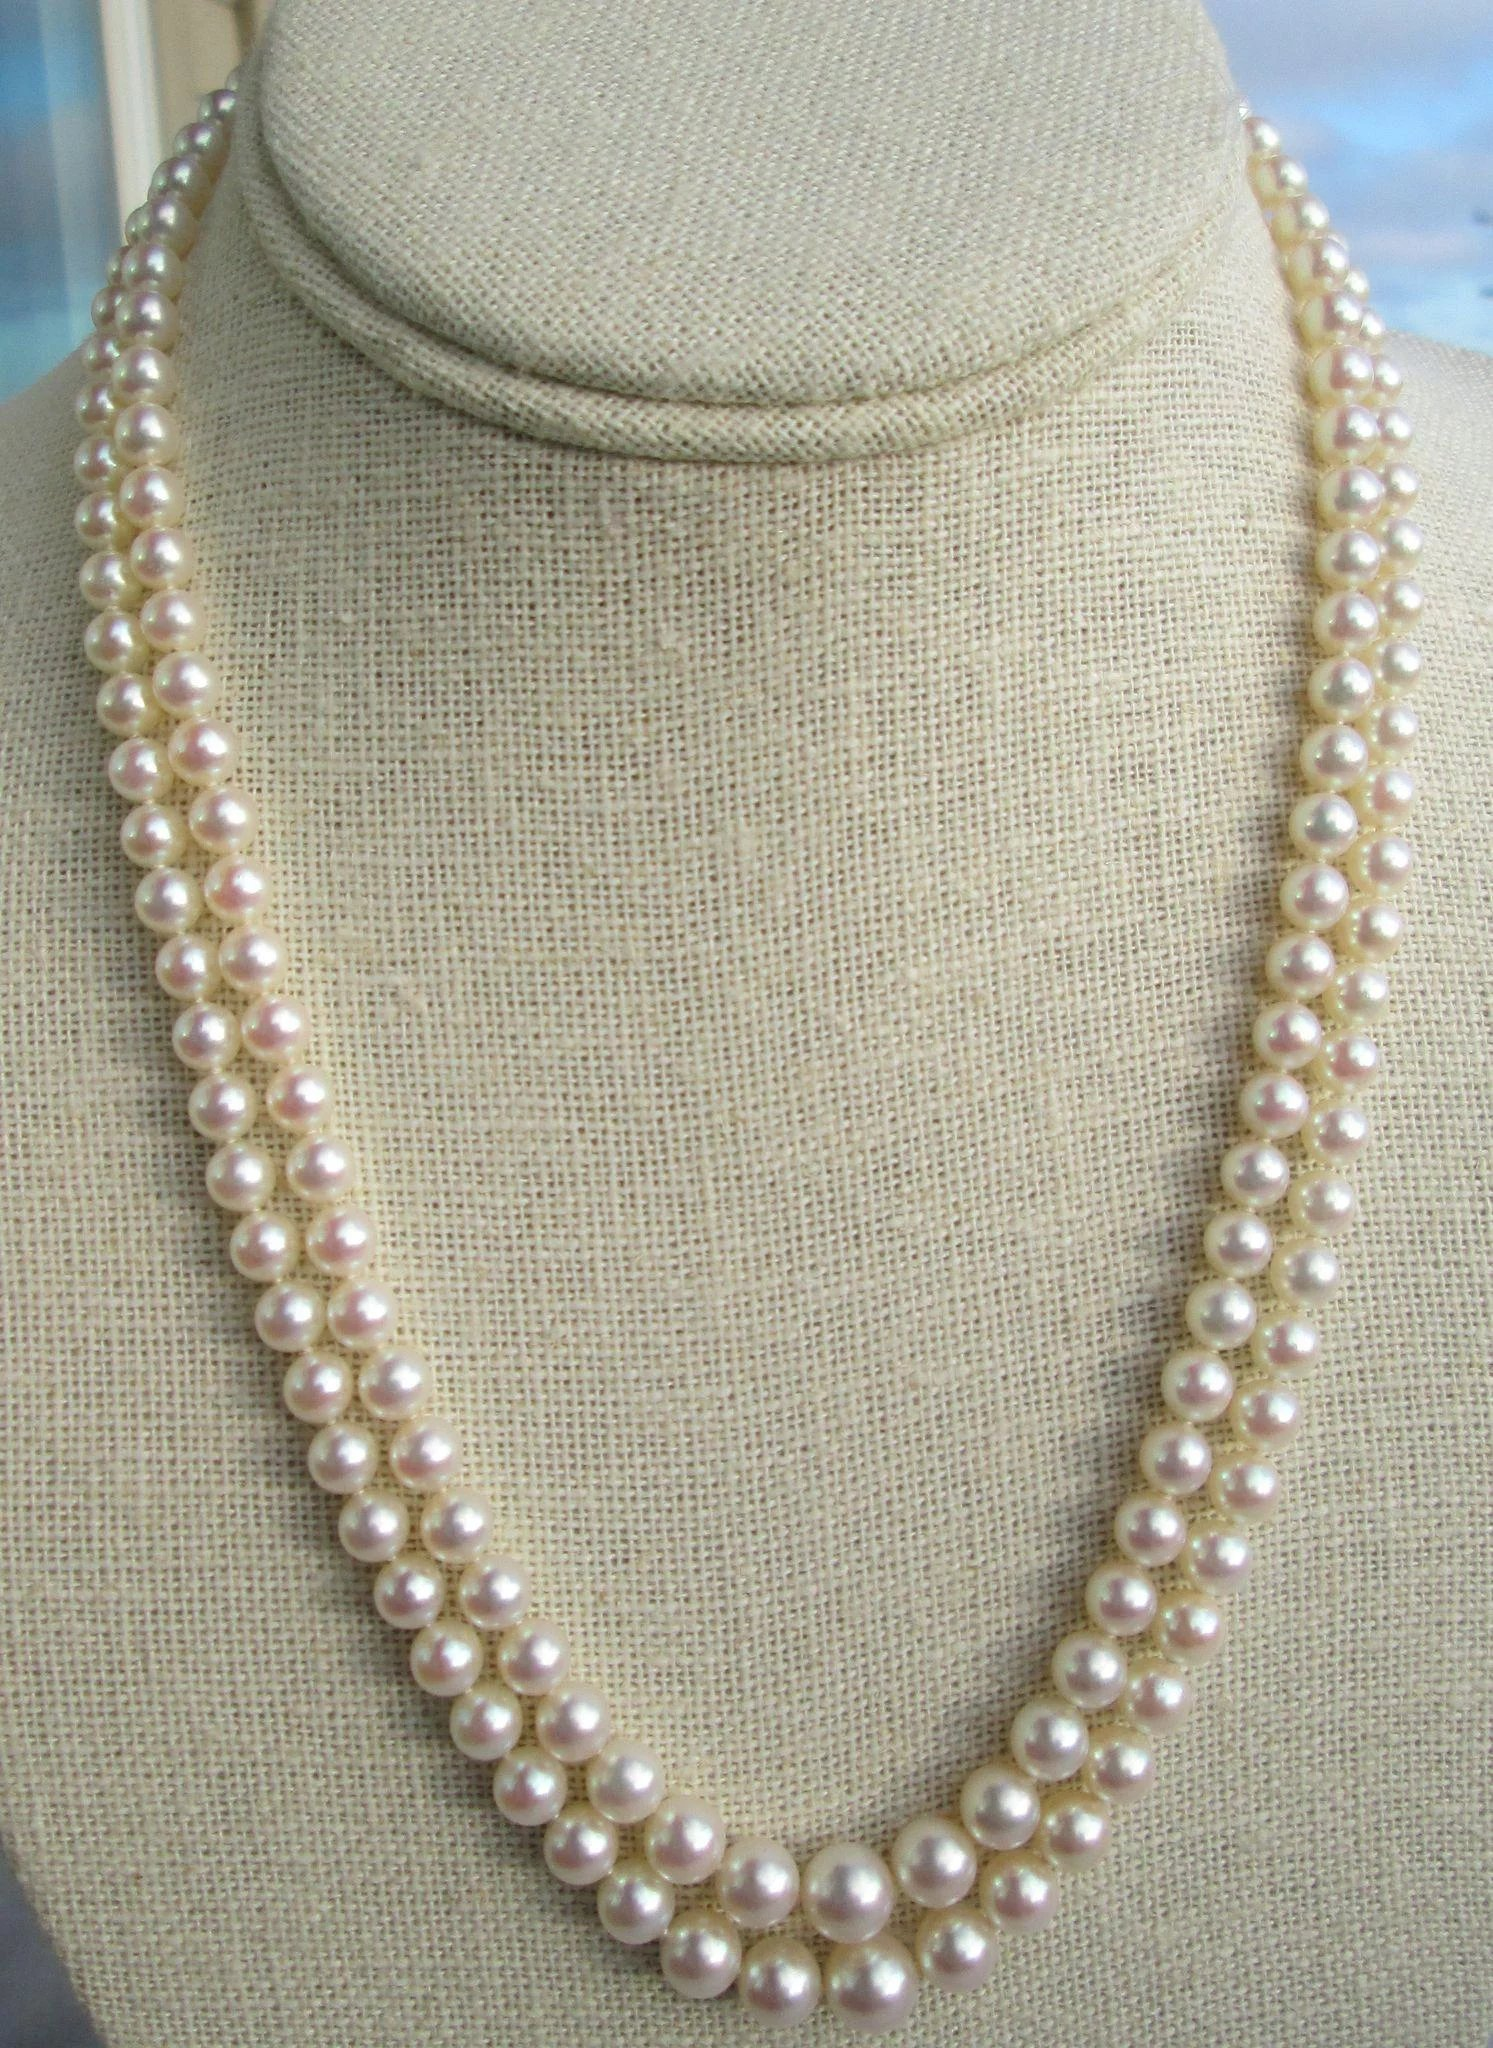 Mikimoto Double Strand Princess Length Cultured Pearl Necklace Vintage Bella Antiques And Jewels Ruby Lane